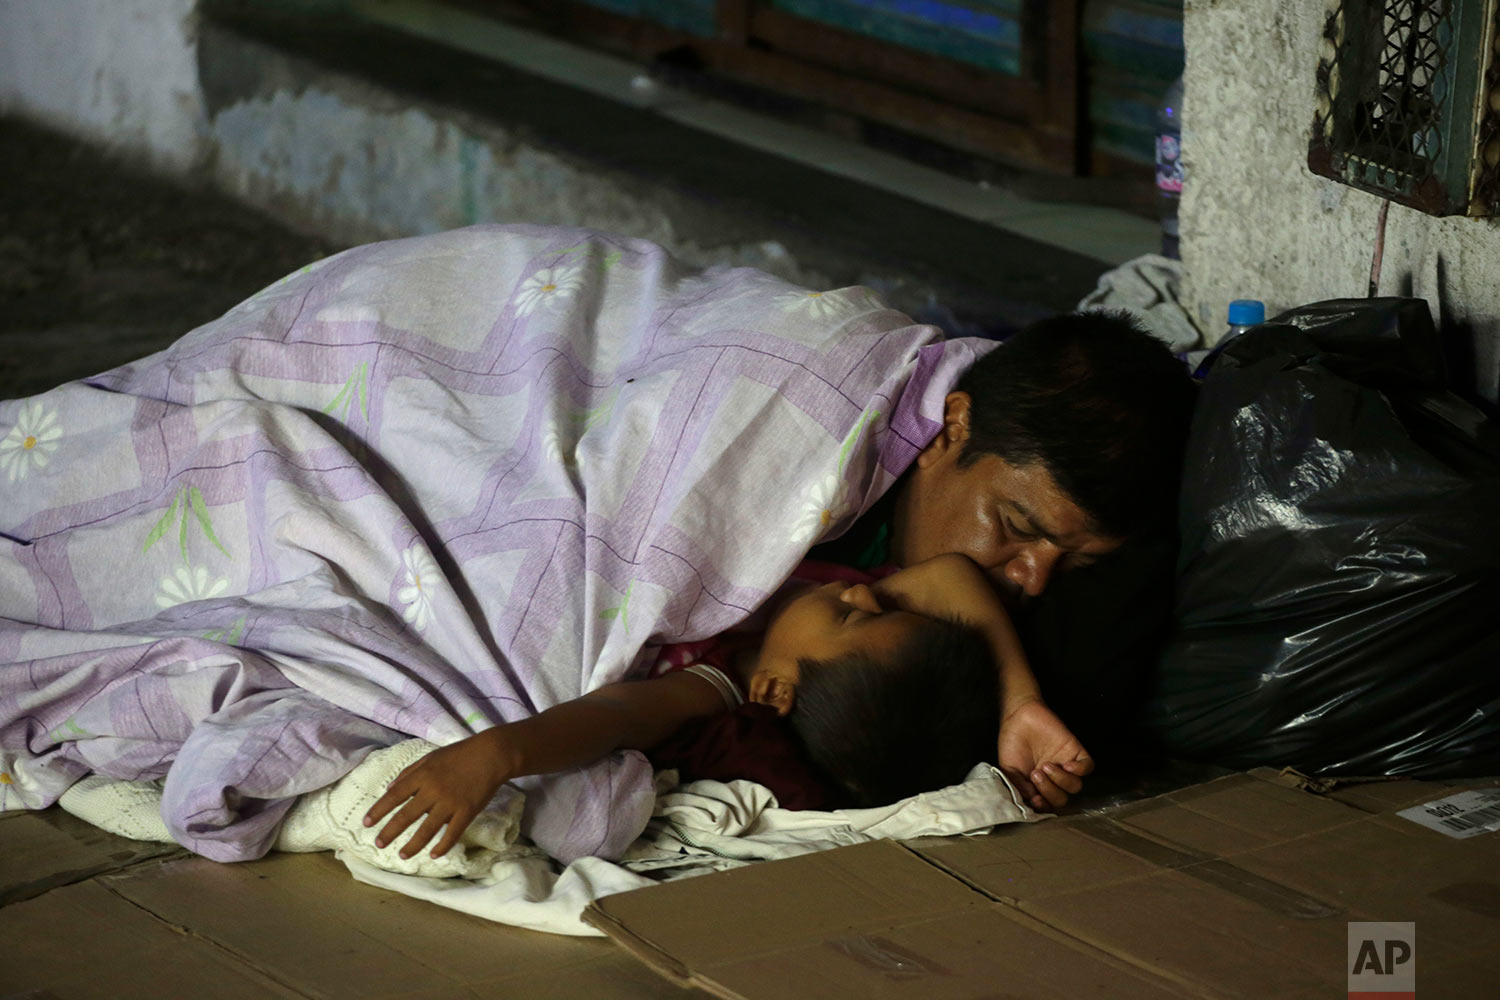 Honduran migrants hoping to reach the U.S. sleep on a sidewalk in the southern Mexico city of Tapachula, Monday, Oct. 22, 2018. (AP Photo/Moises Castillo)